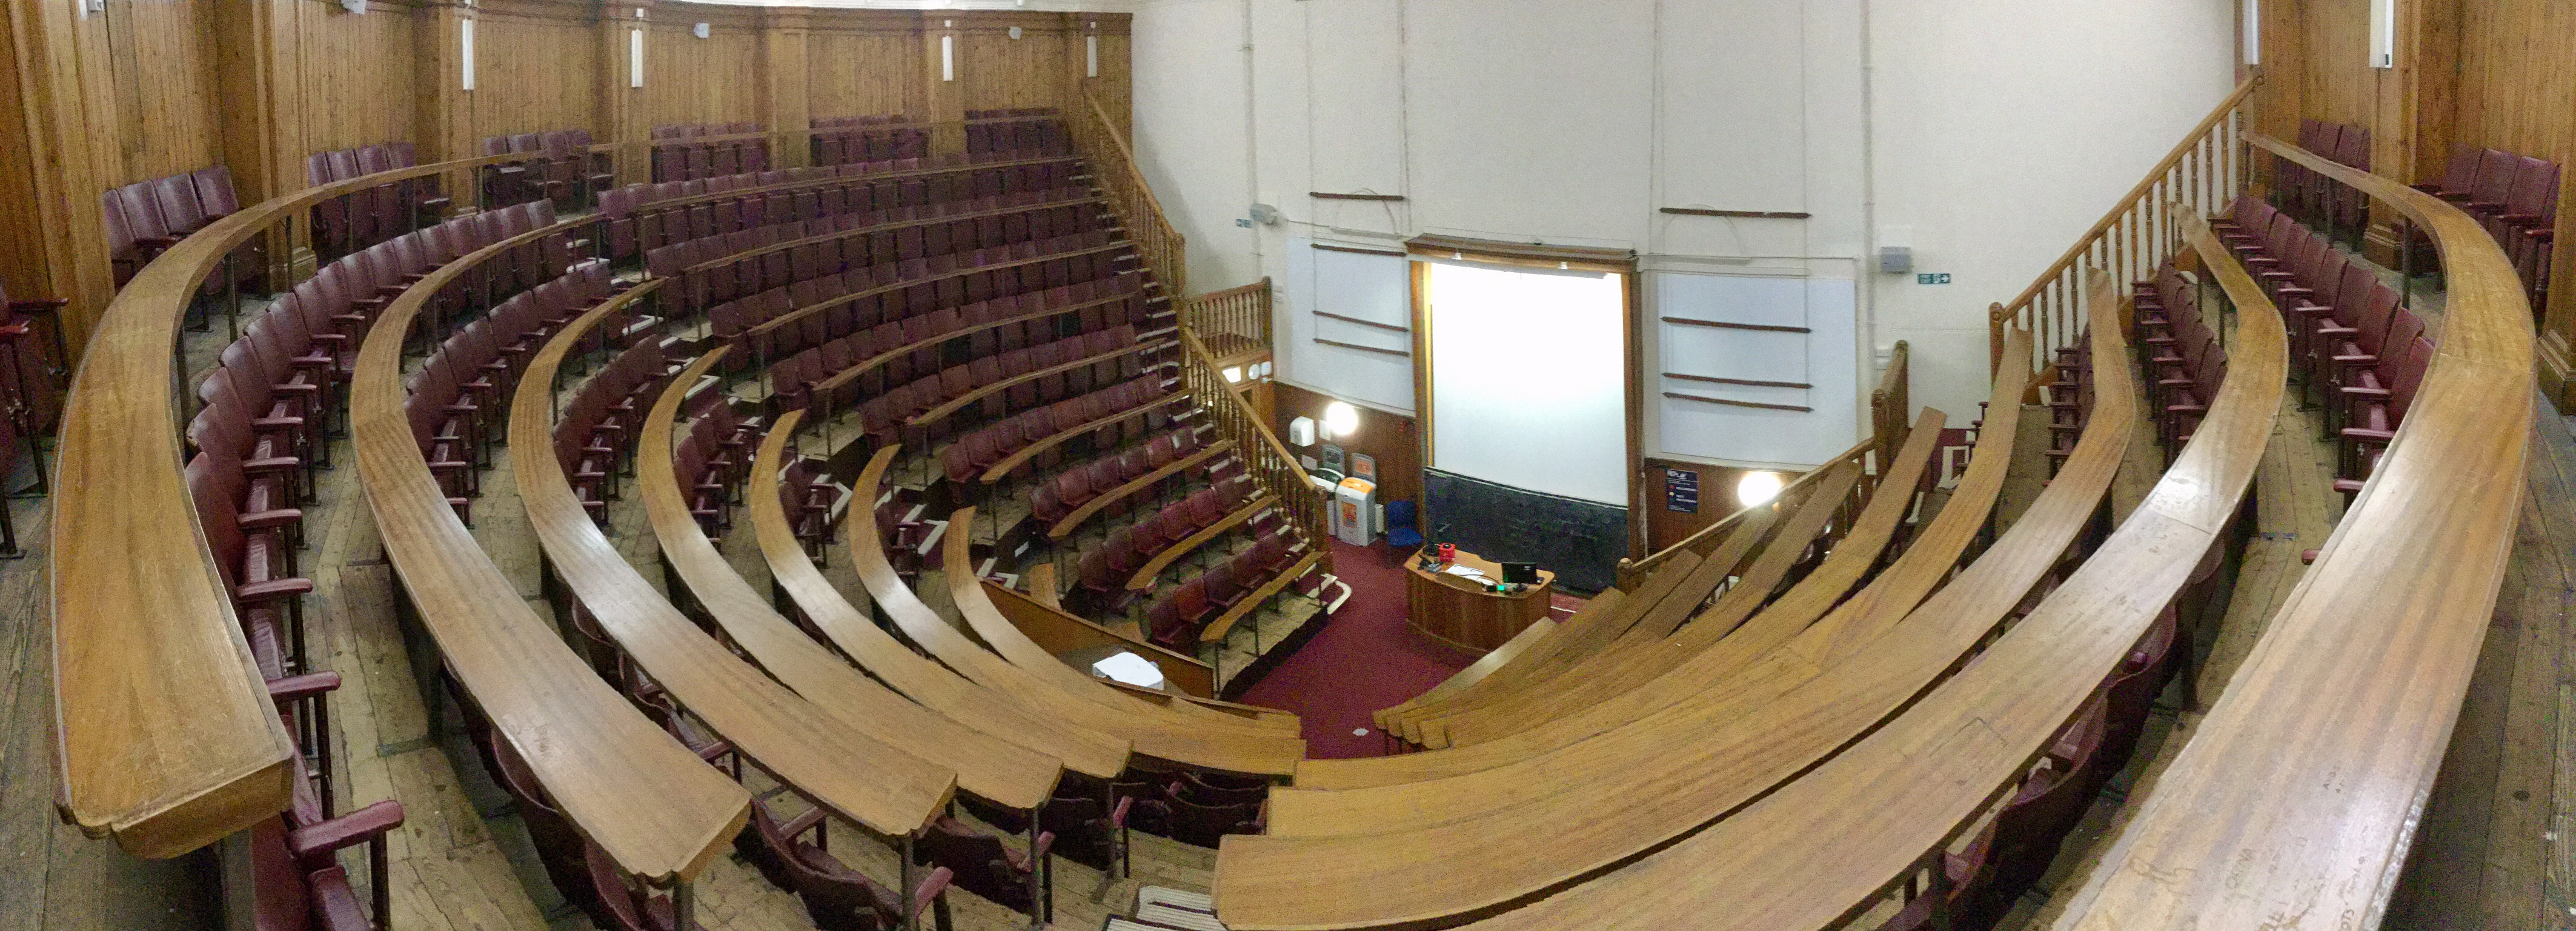 Anatomy Lecture Hall, Old Medical School, University of Edinburgh, 2018 Amy Cools